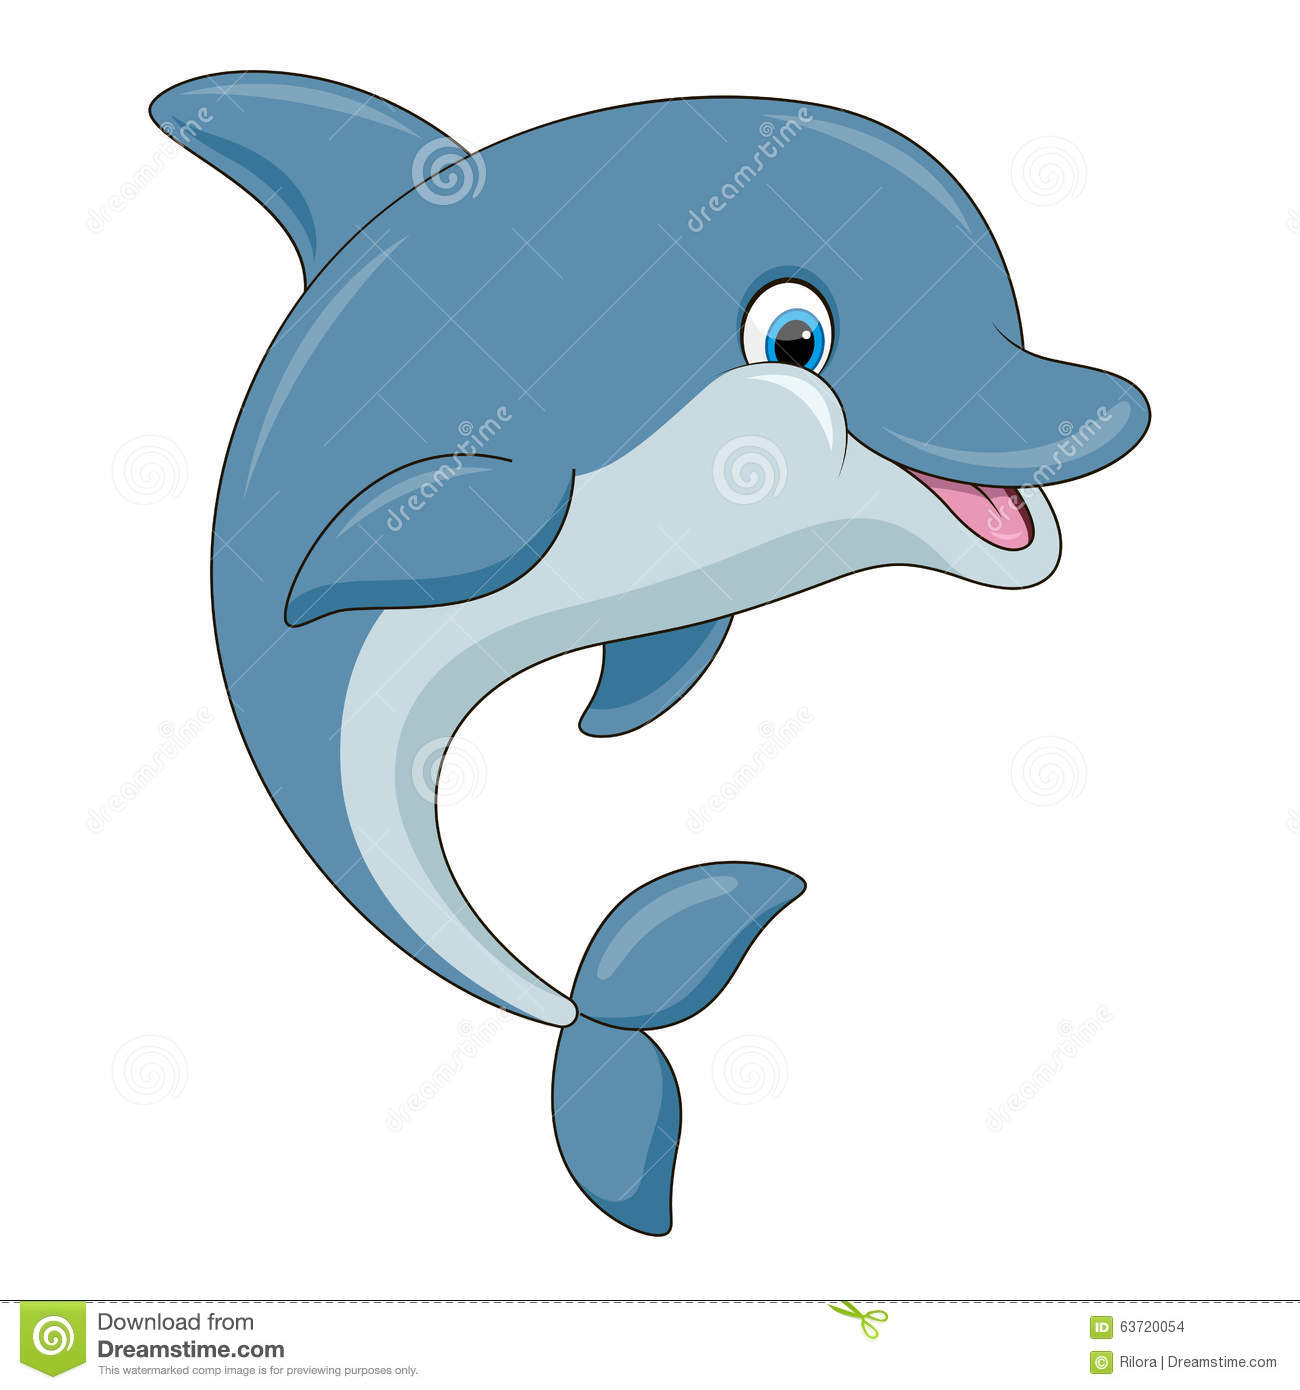 3d Animation Desktop Wallpapers Free Download Cute Cartoon Dolphin Vector Illustration Stock Vector